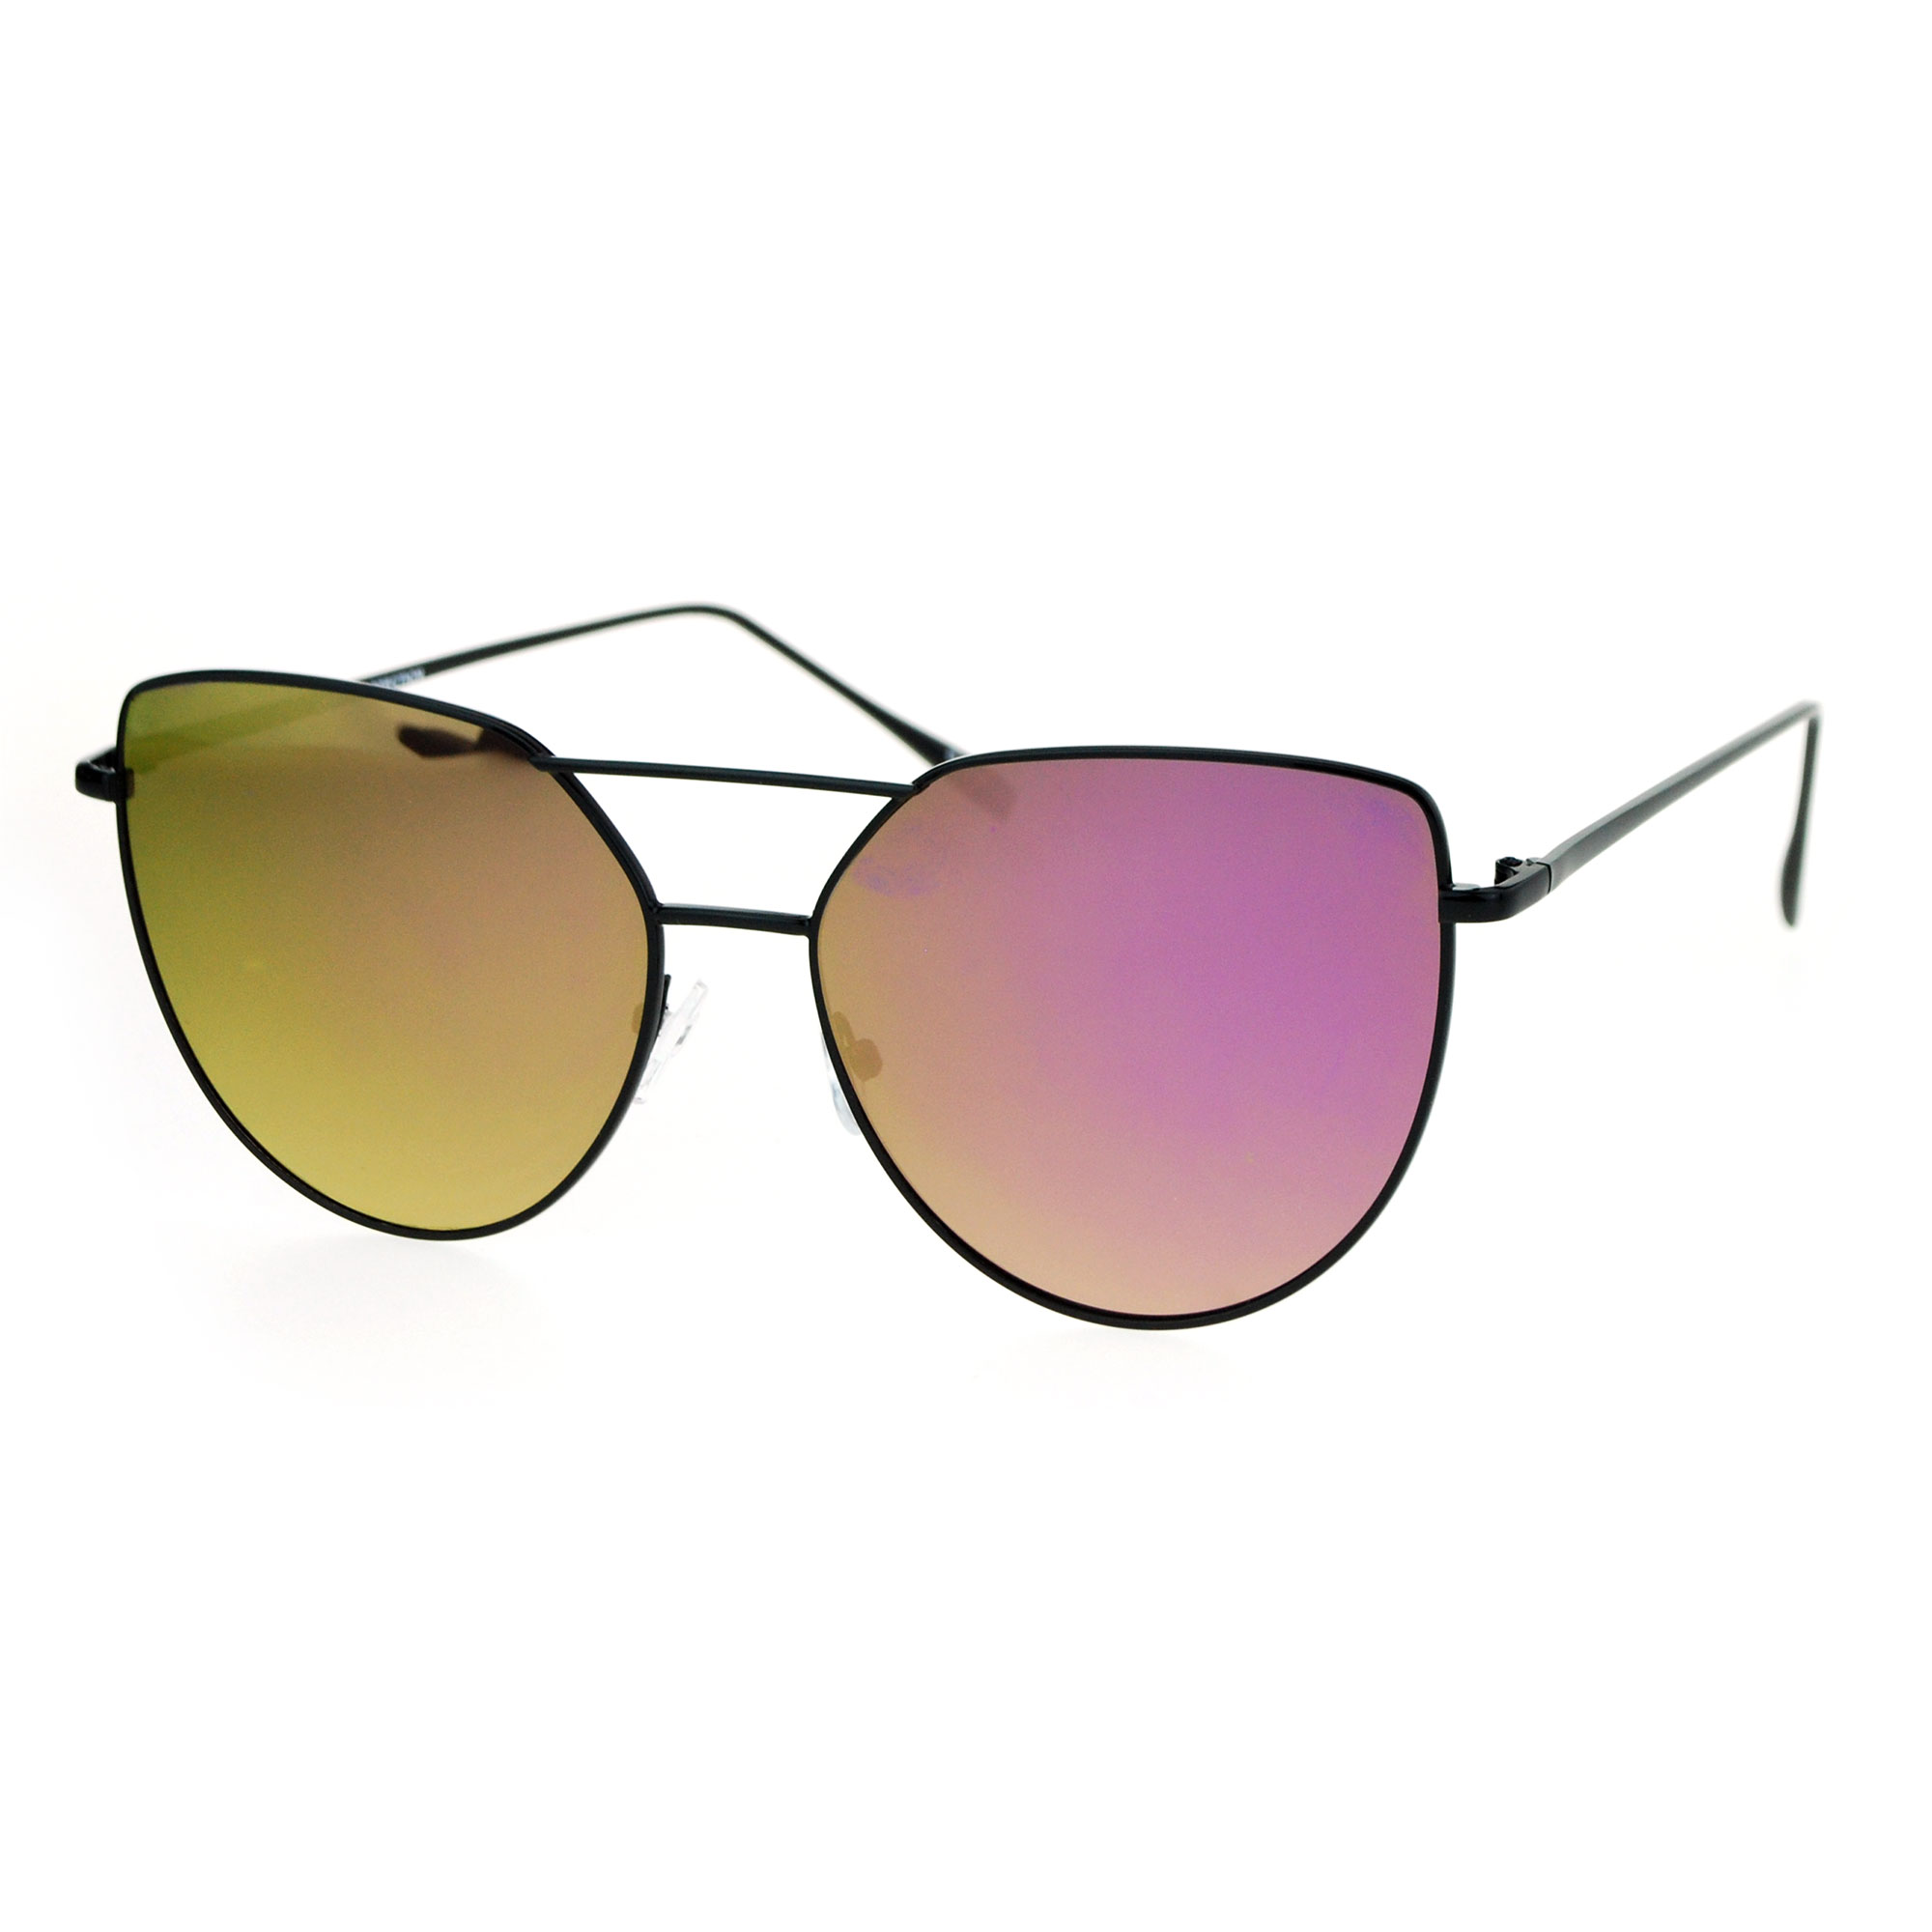 Flash colored and mirrored lens sunglasses collection. Flash mirrored reflective color lenses allow dynamic color changing depending on angle and light. Each pair of revo or mirrored lens provides an intense look that will make any frame stand out!